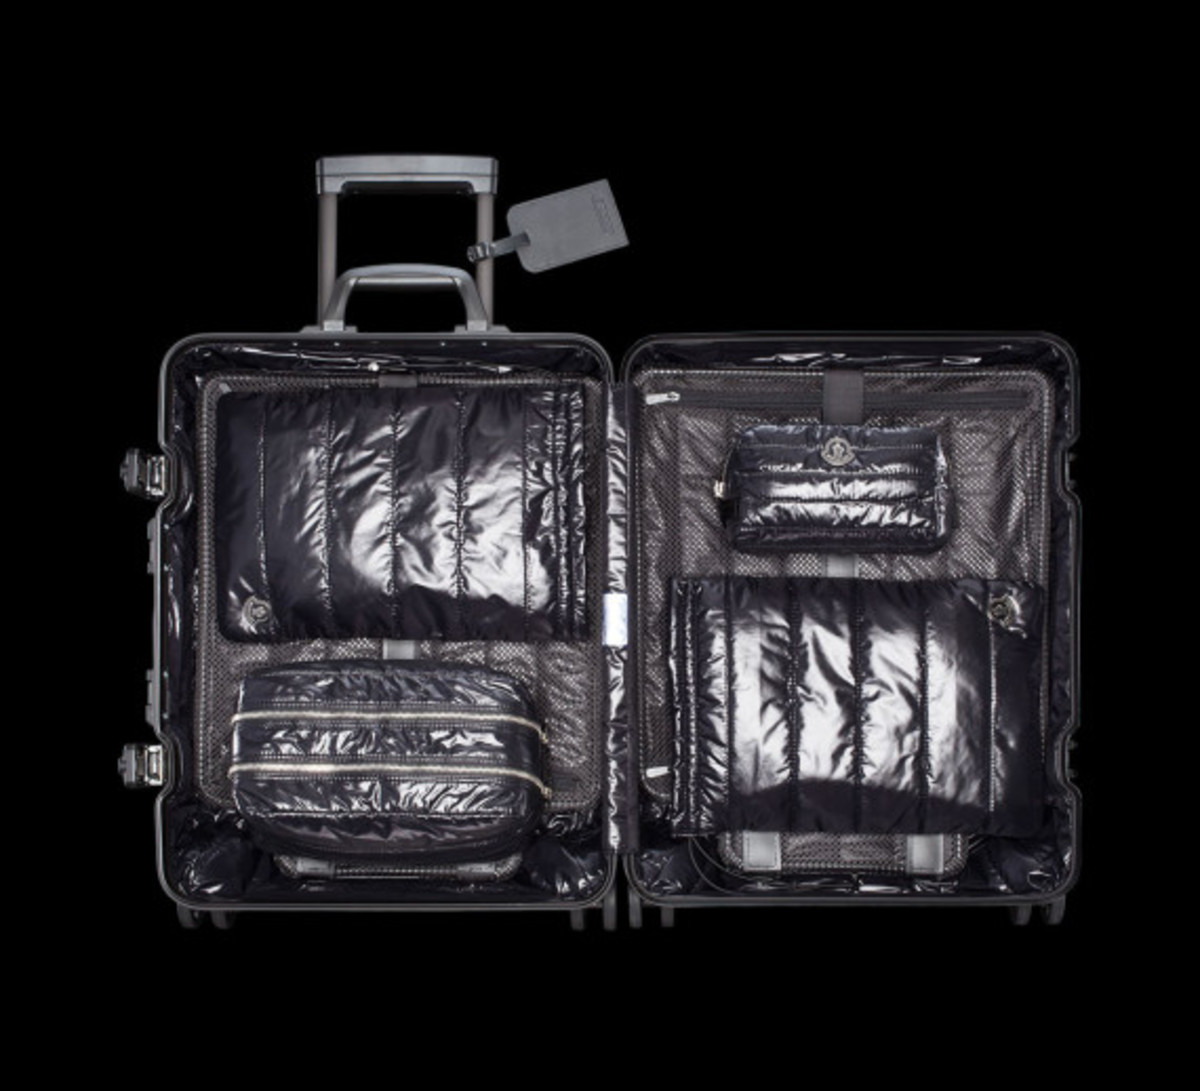 rimowa-and-moncler-luggage-collection-04